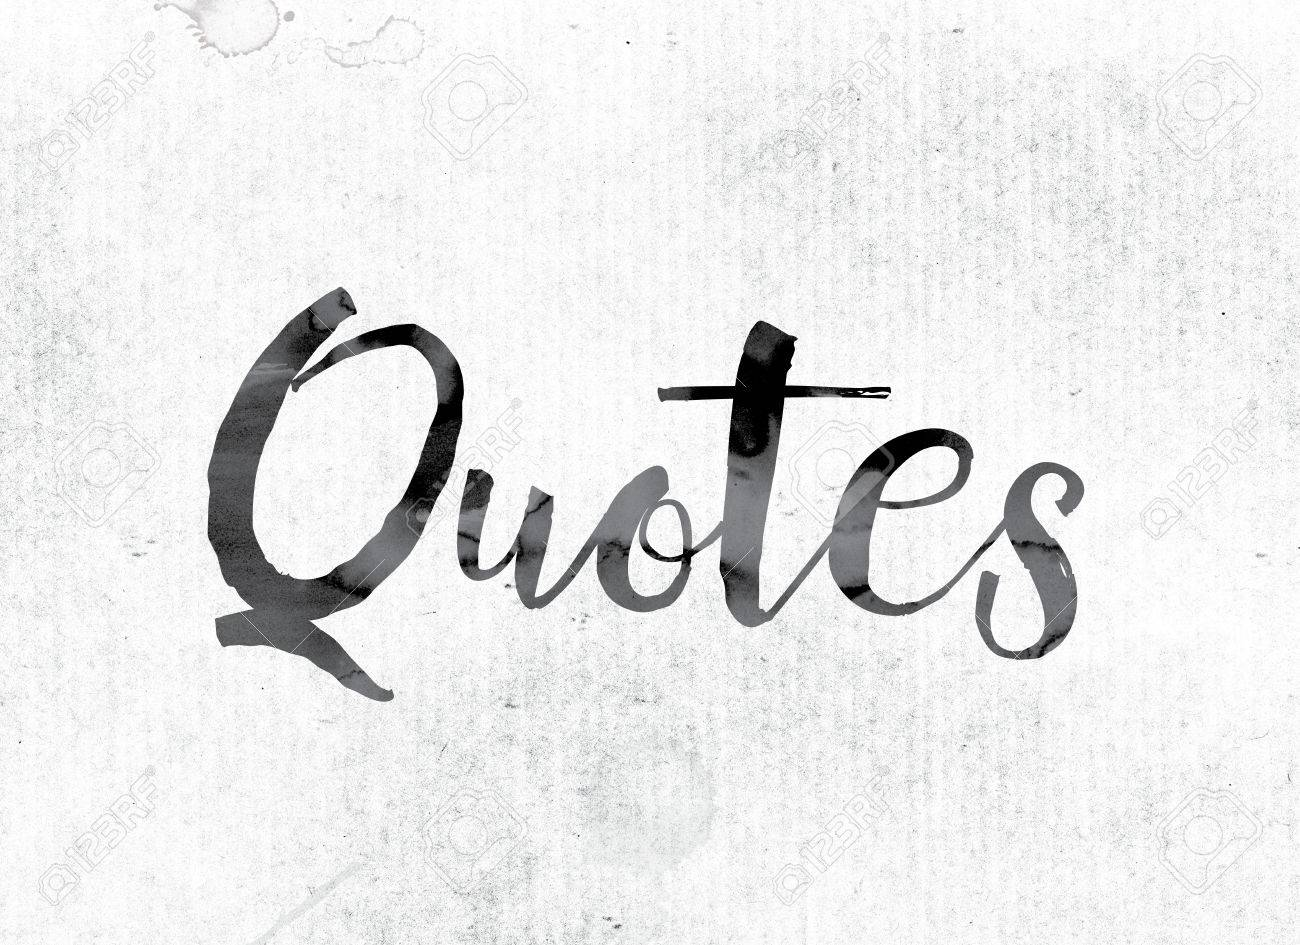 Word Quotes | The Word Quotes Concept And Theme Painted In Watercolor Ink